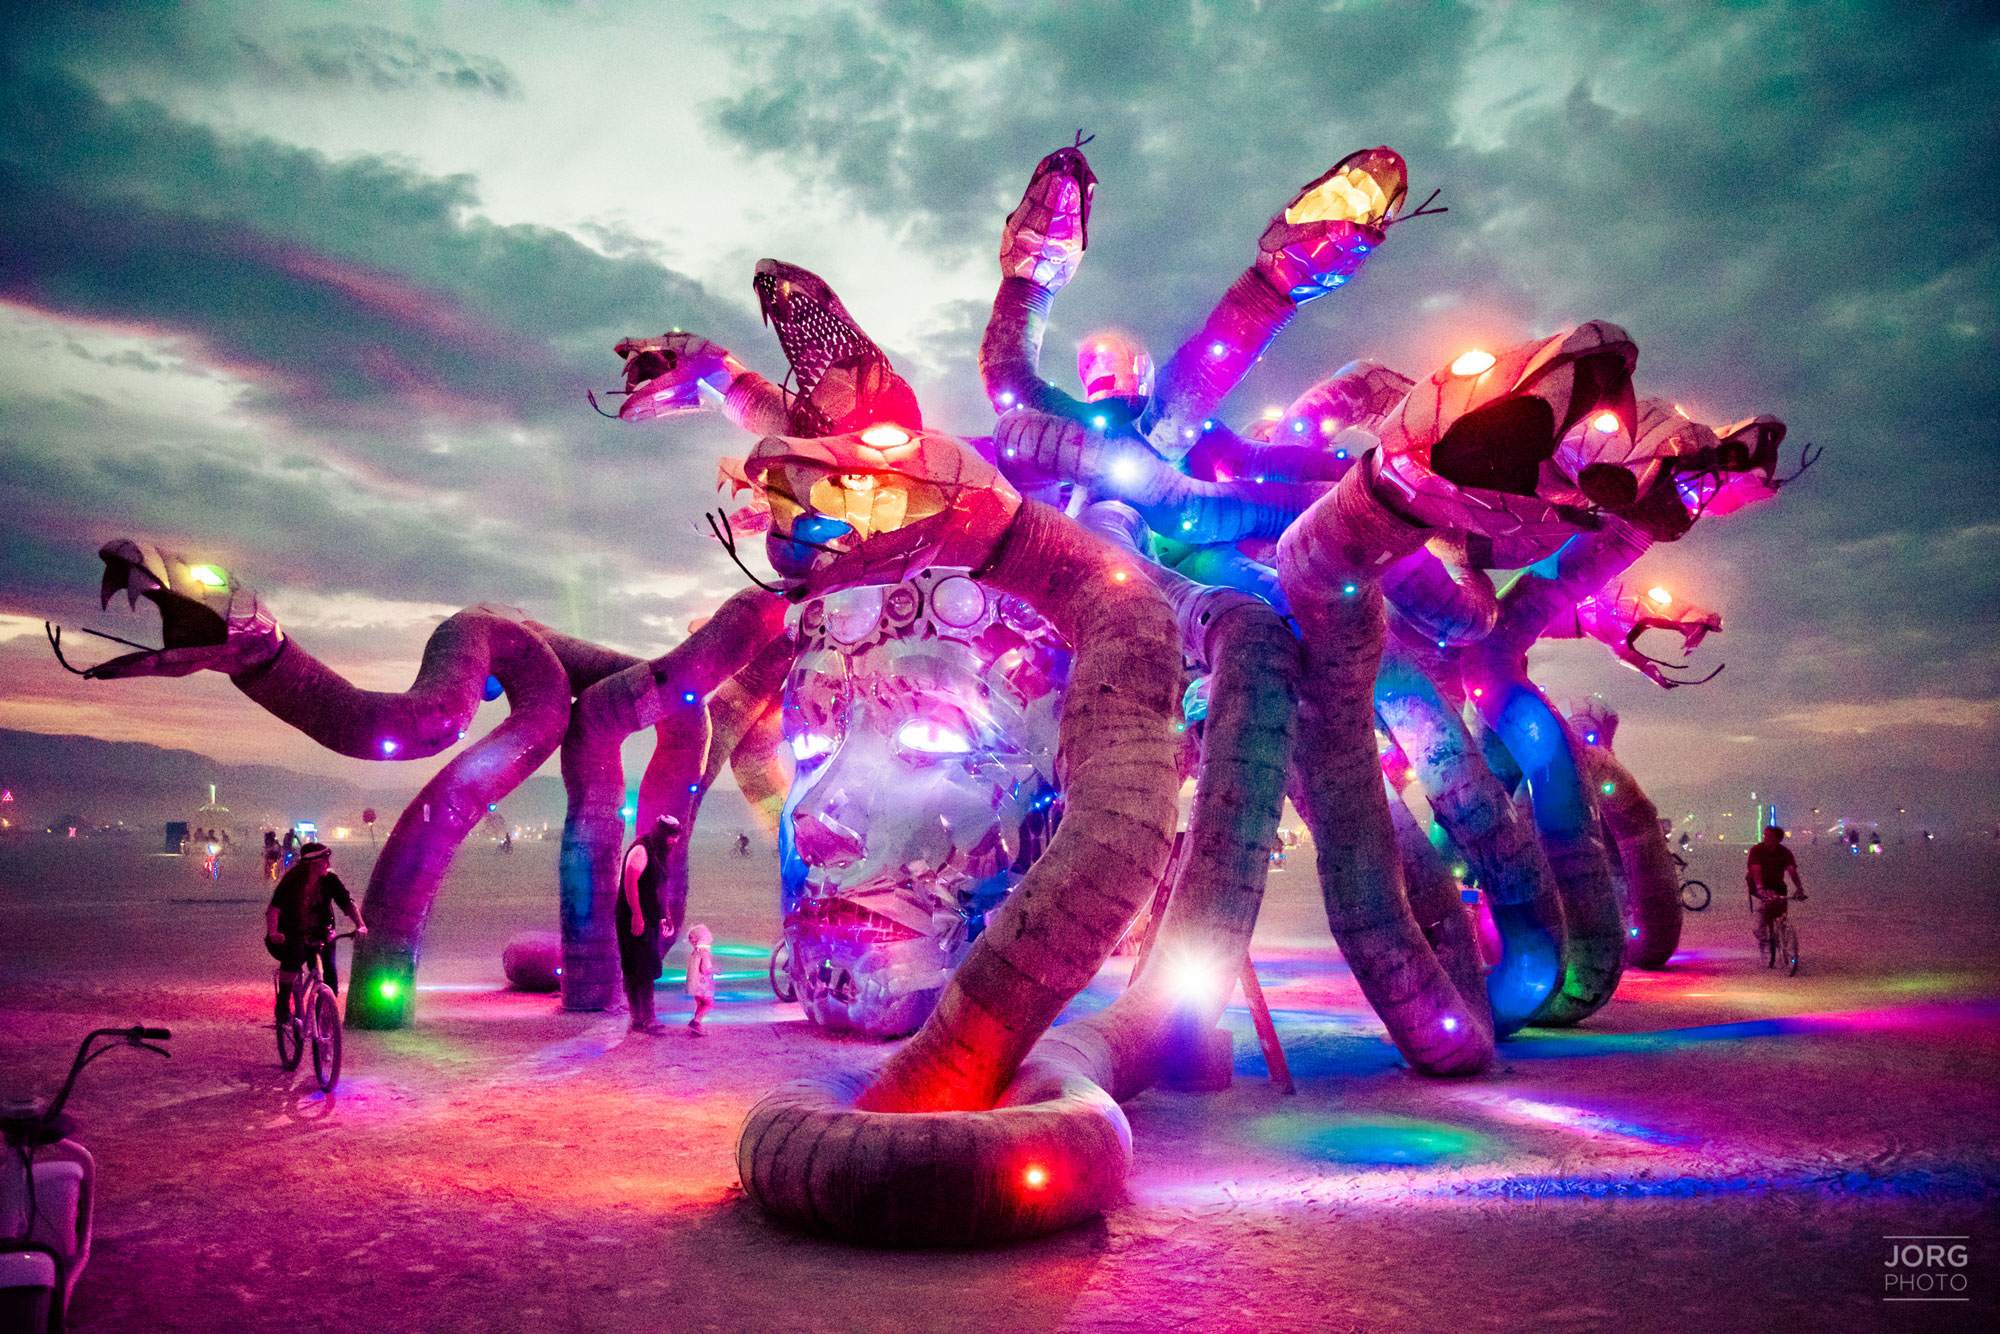 burning_man_2016_jorgphoto_05